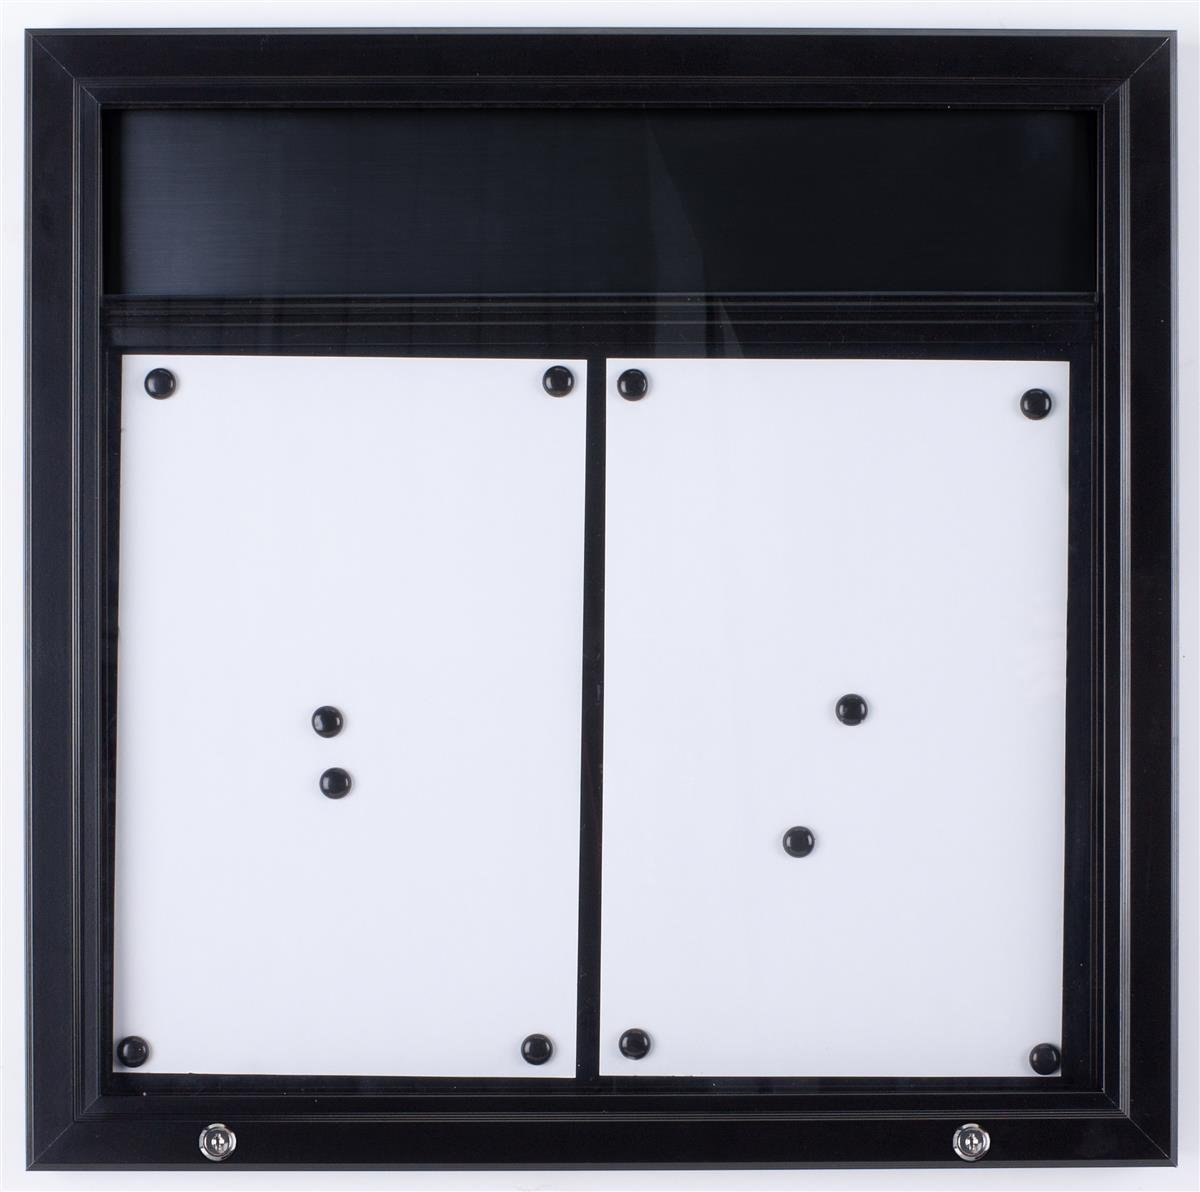 Displays2go ODM111721H Bulletin Board with Swing-Open Locking Door for Outdoor Use, Wall Mounted Notice Board with Black Magnetic Surface, Optional Header Bar, Aluminum (Black)